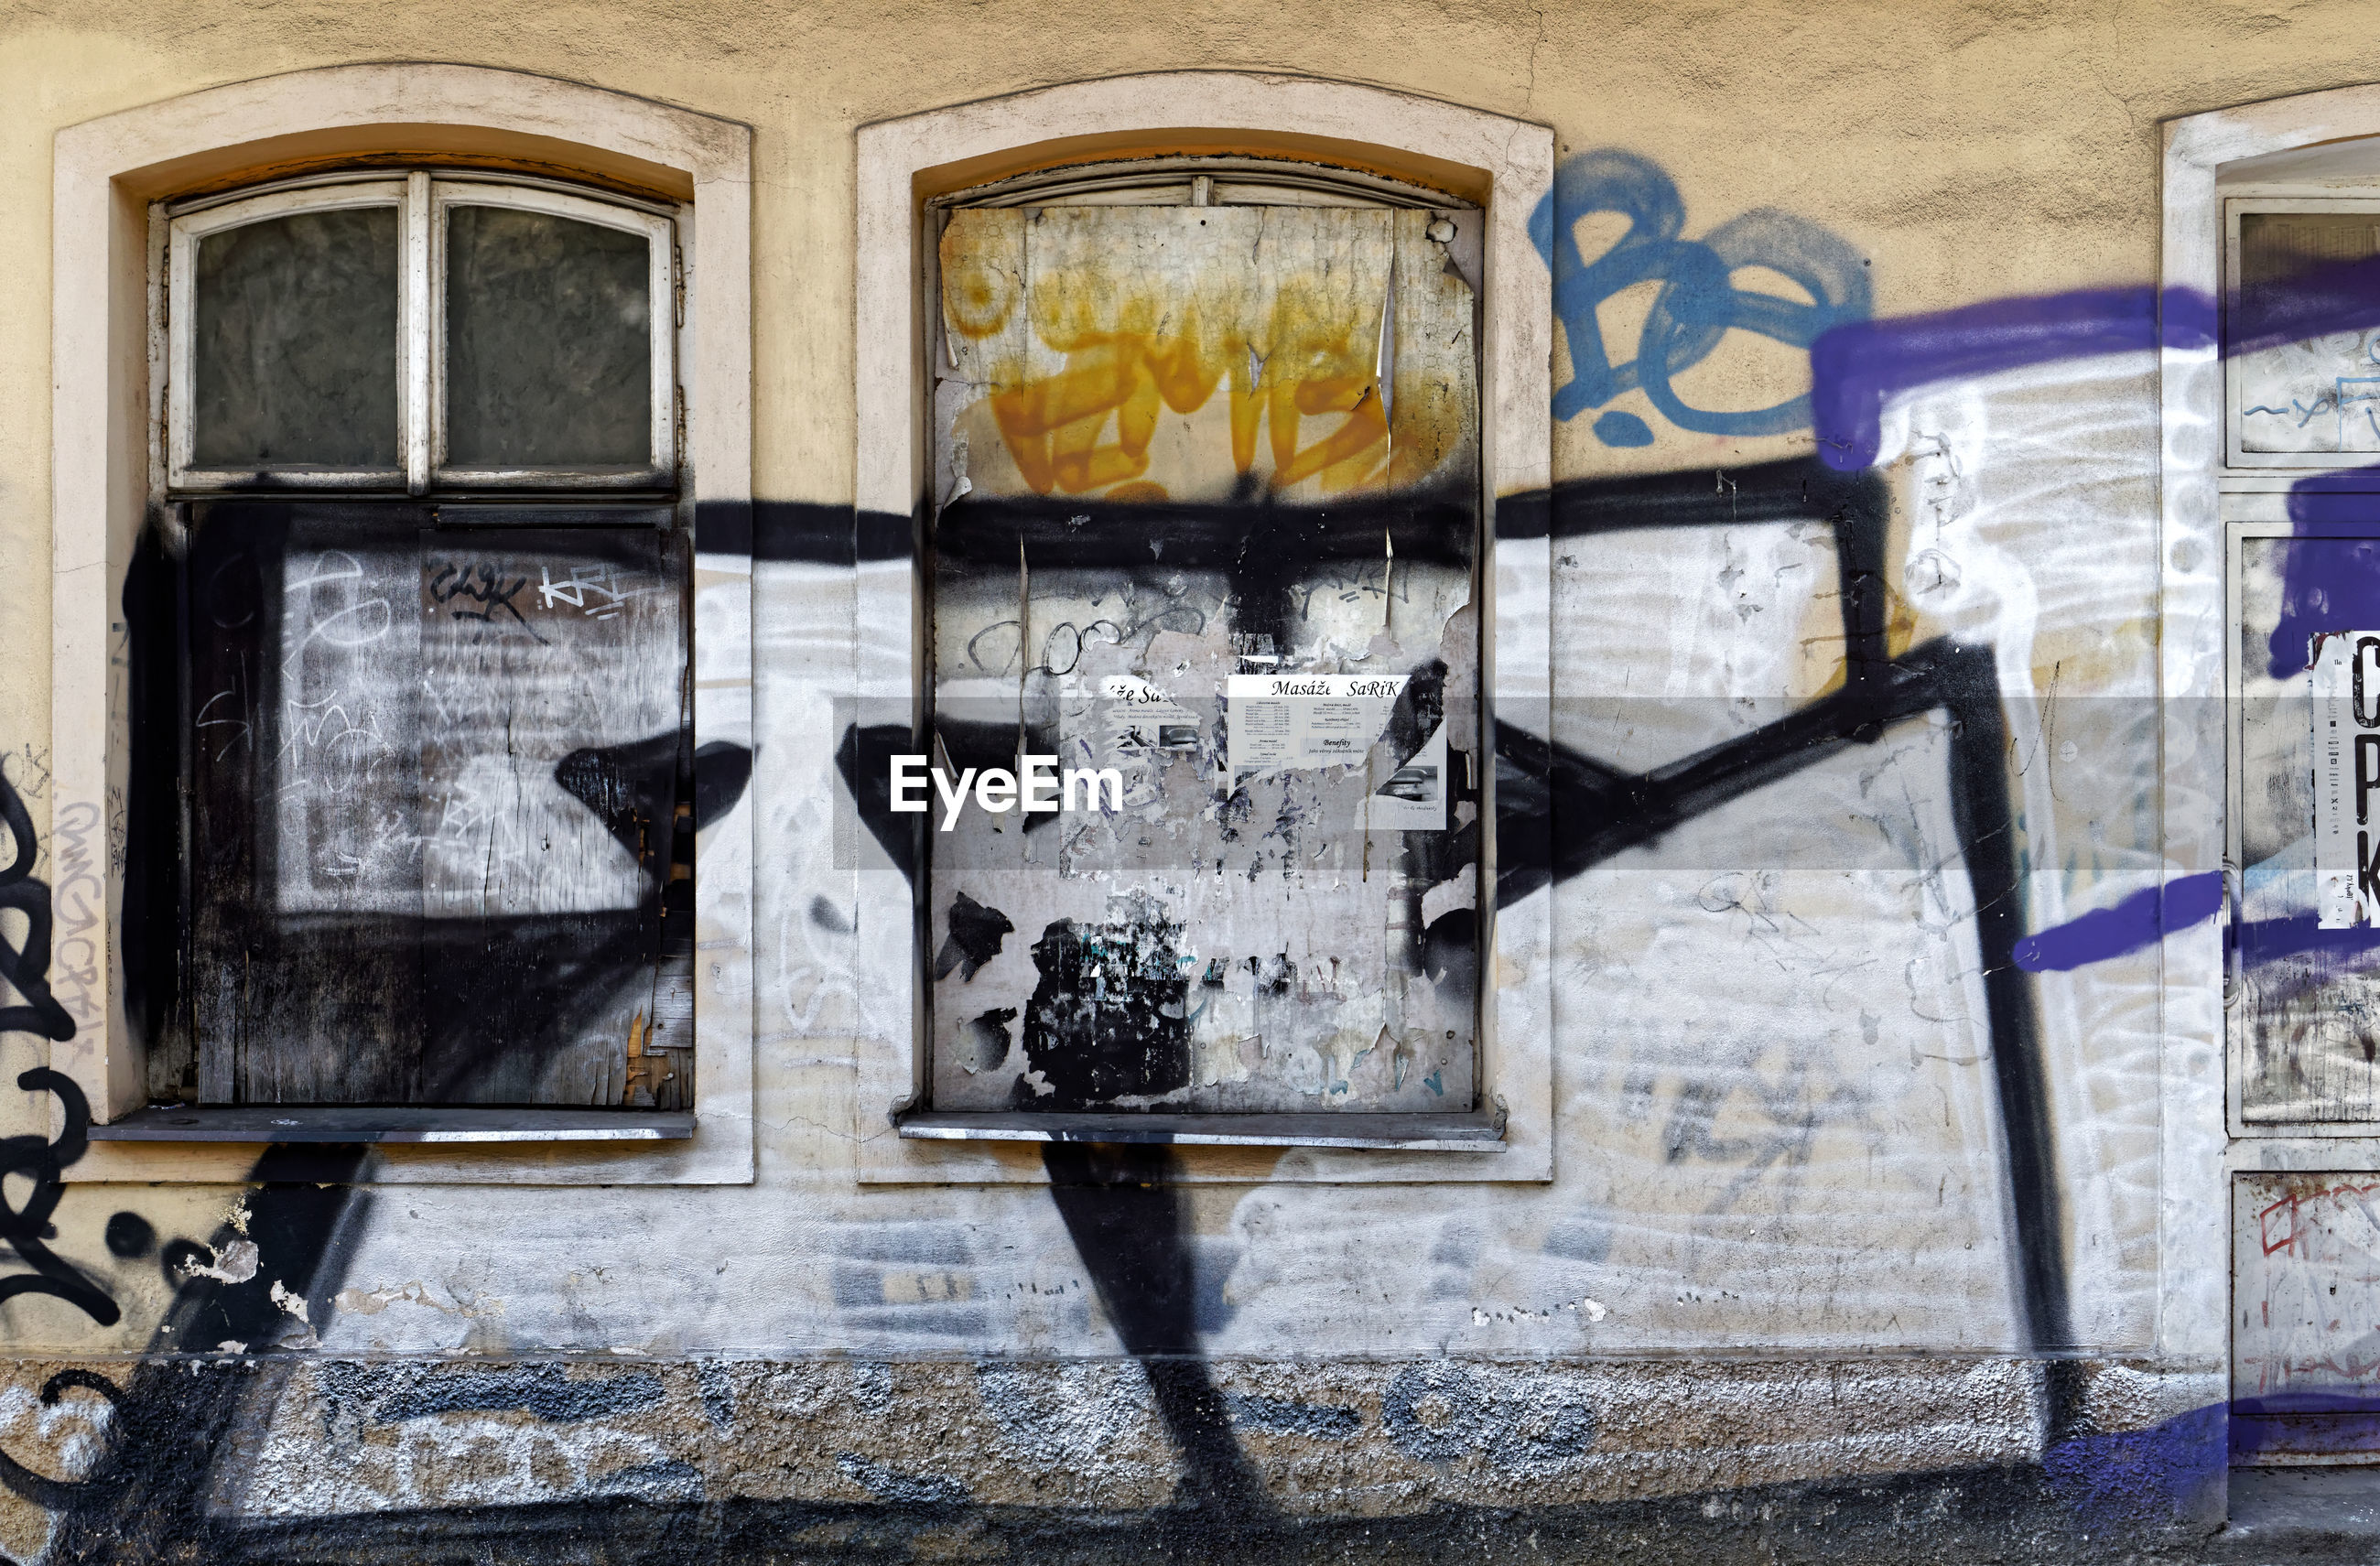 architecture, graffiti, building exterior, window, built structure, text, no people, communication, day, glass - material, transparent, wall - building feature, wall, outdoors, abandoned, western script, old, building, city, deterioration, glass, mural